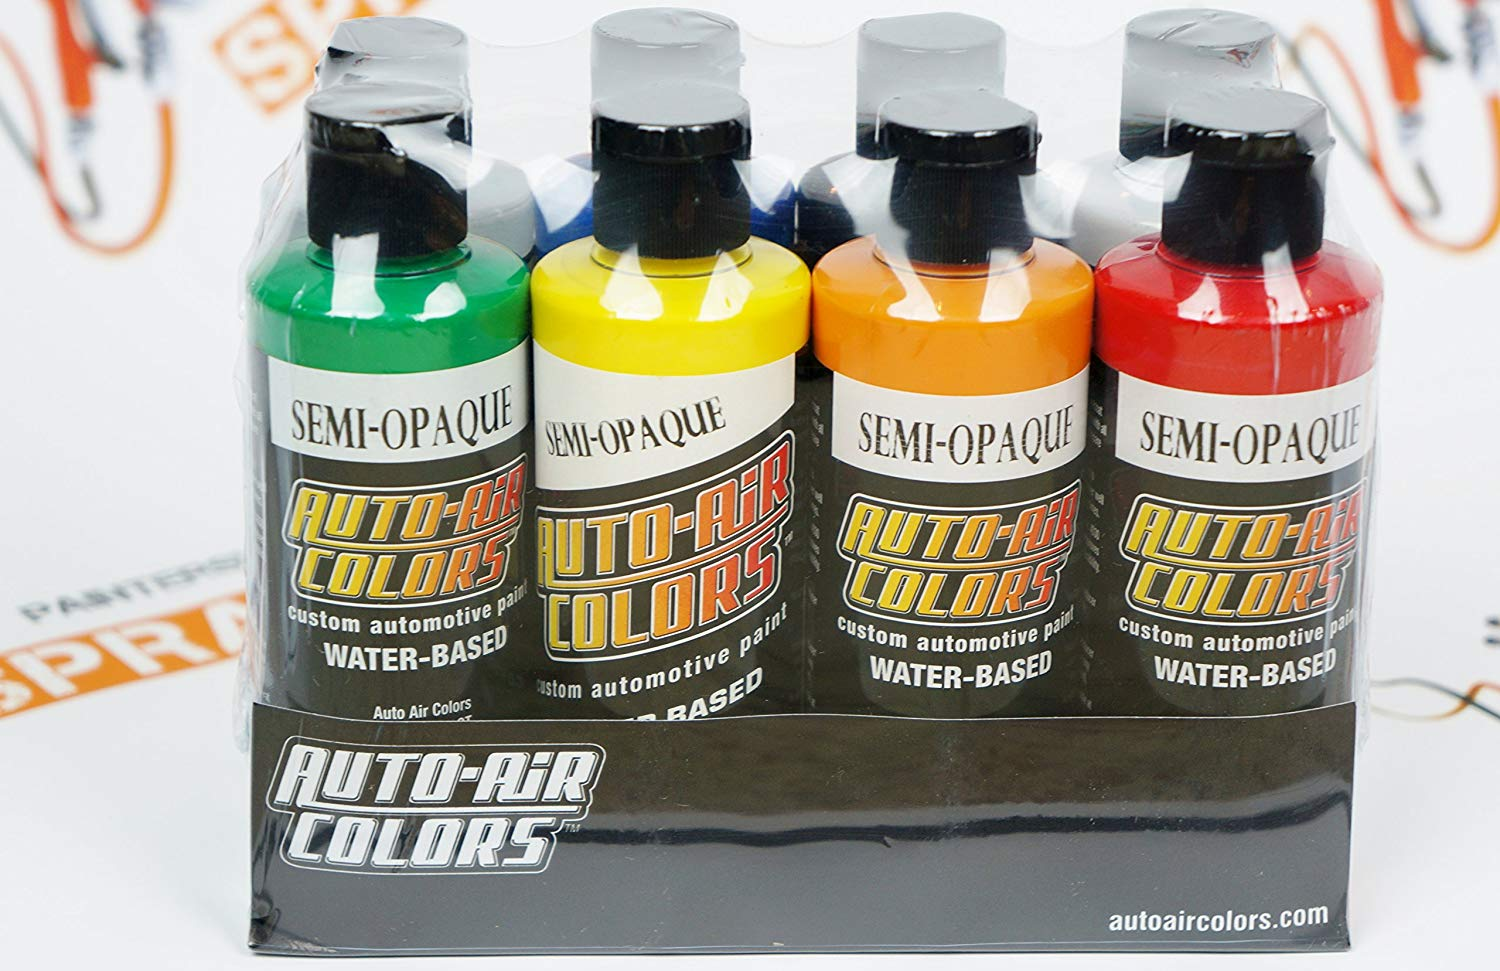 Createx Auto-Air colors Semi-Opaque Paint Set 4oz. each 7 colors + reducer. by SprayGunner